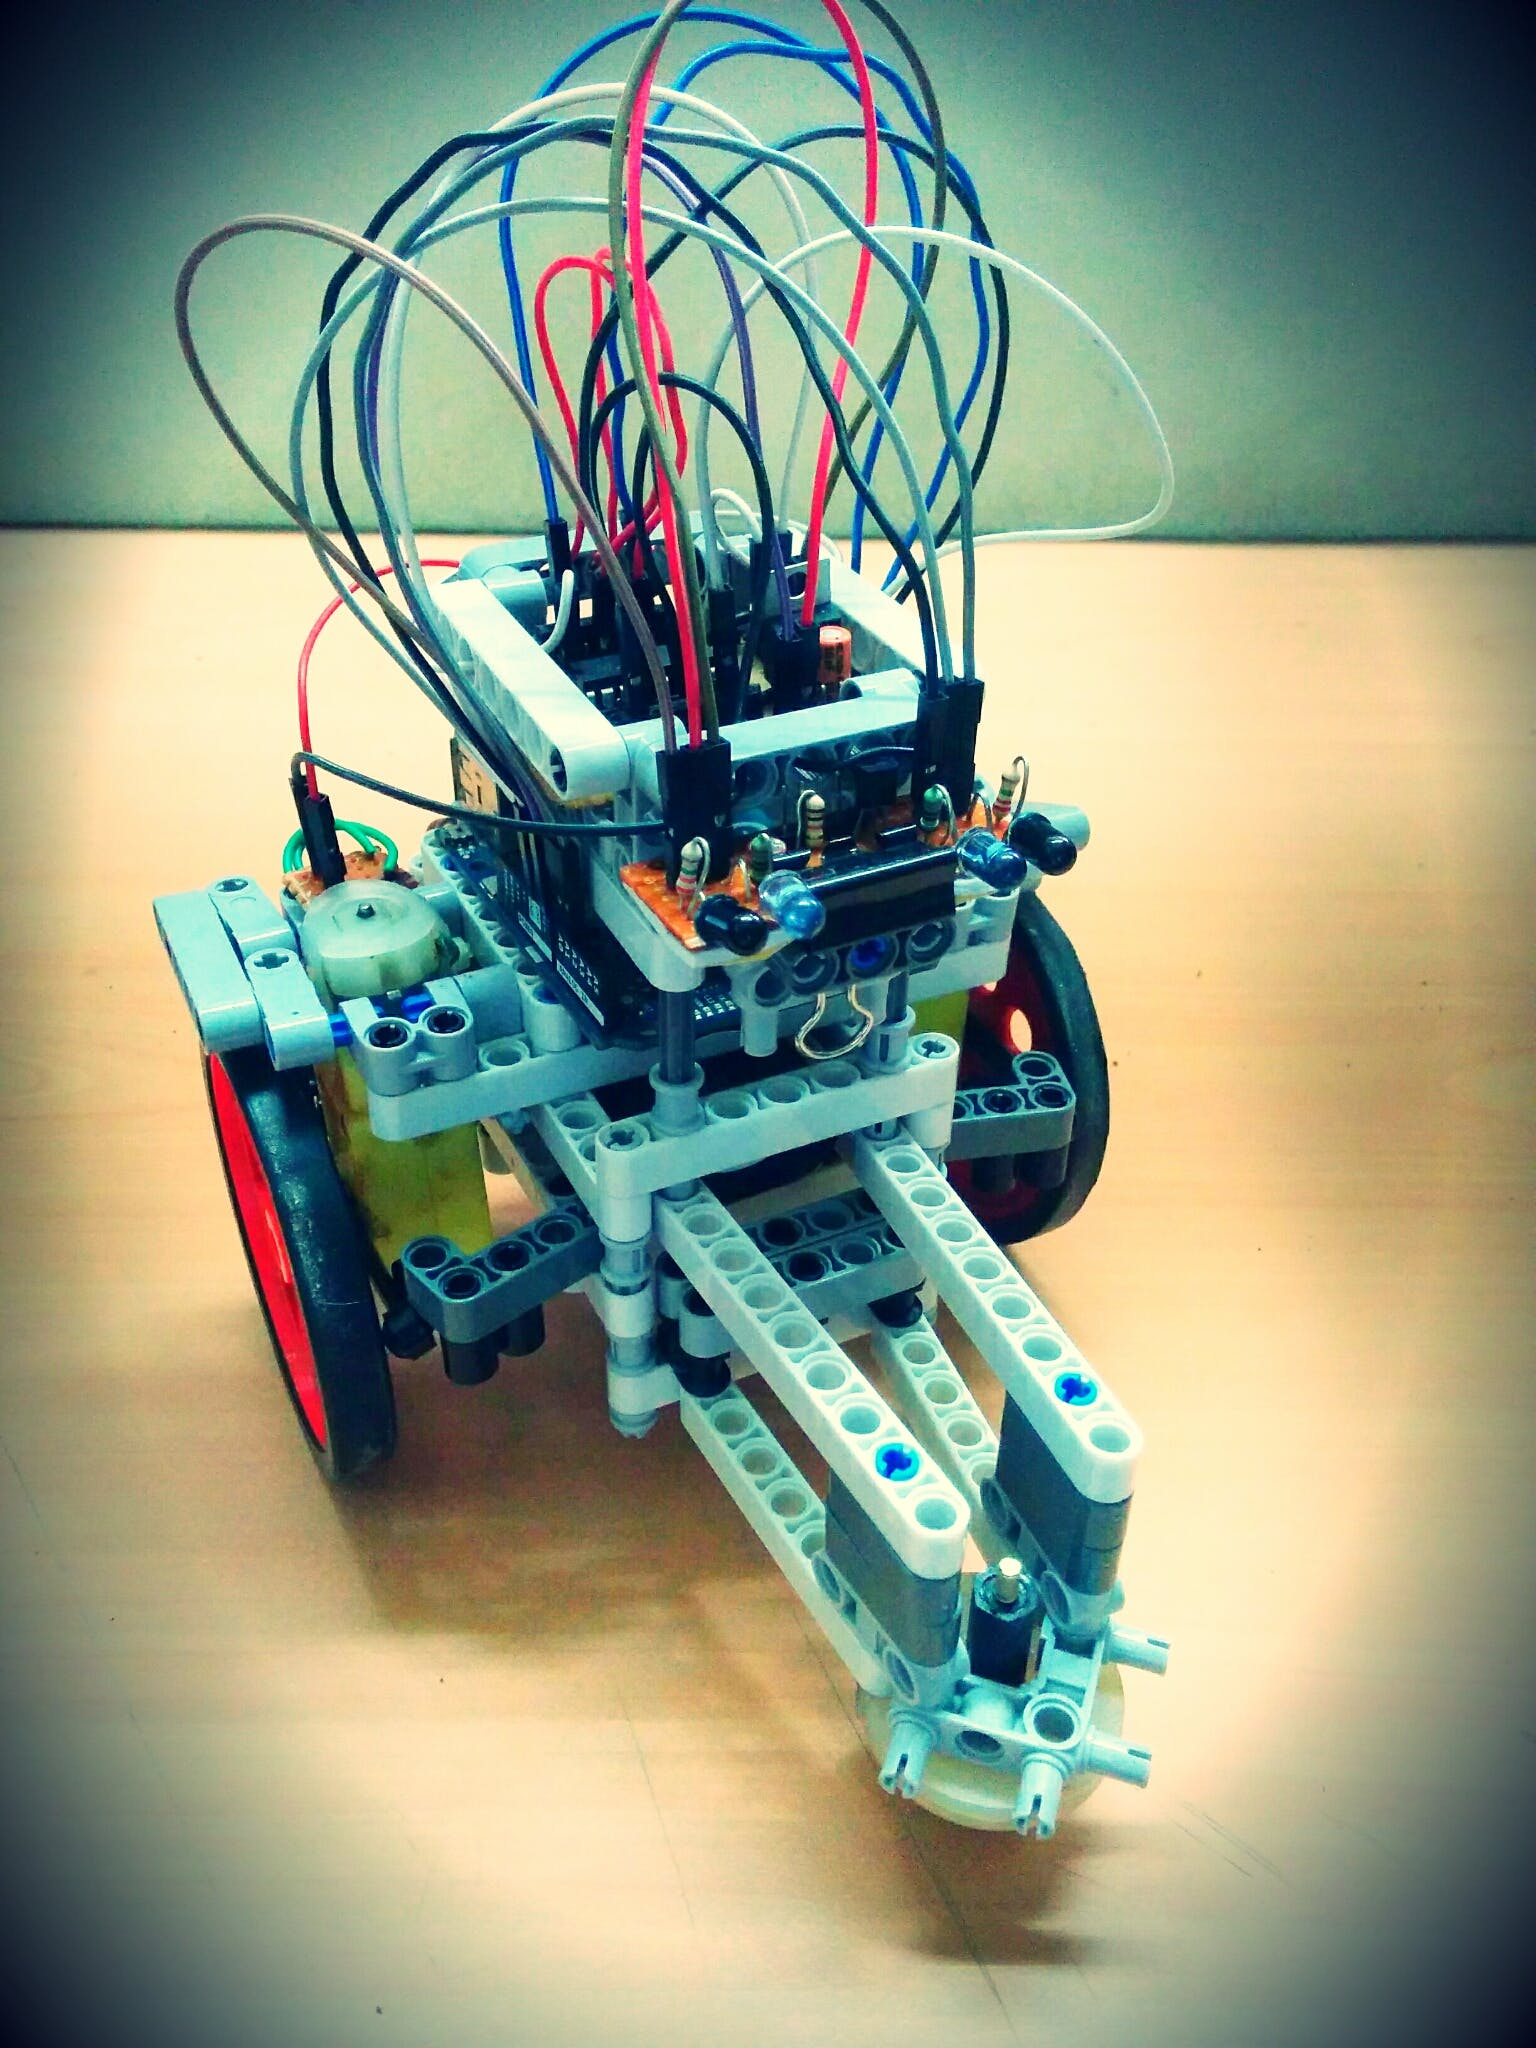 The IoT Dune Buggy is ready to roll!